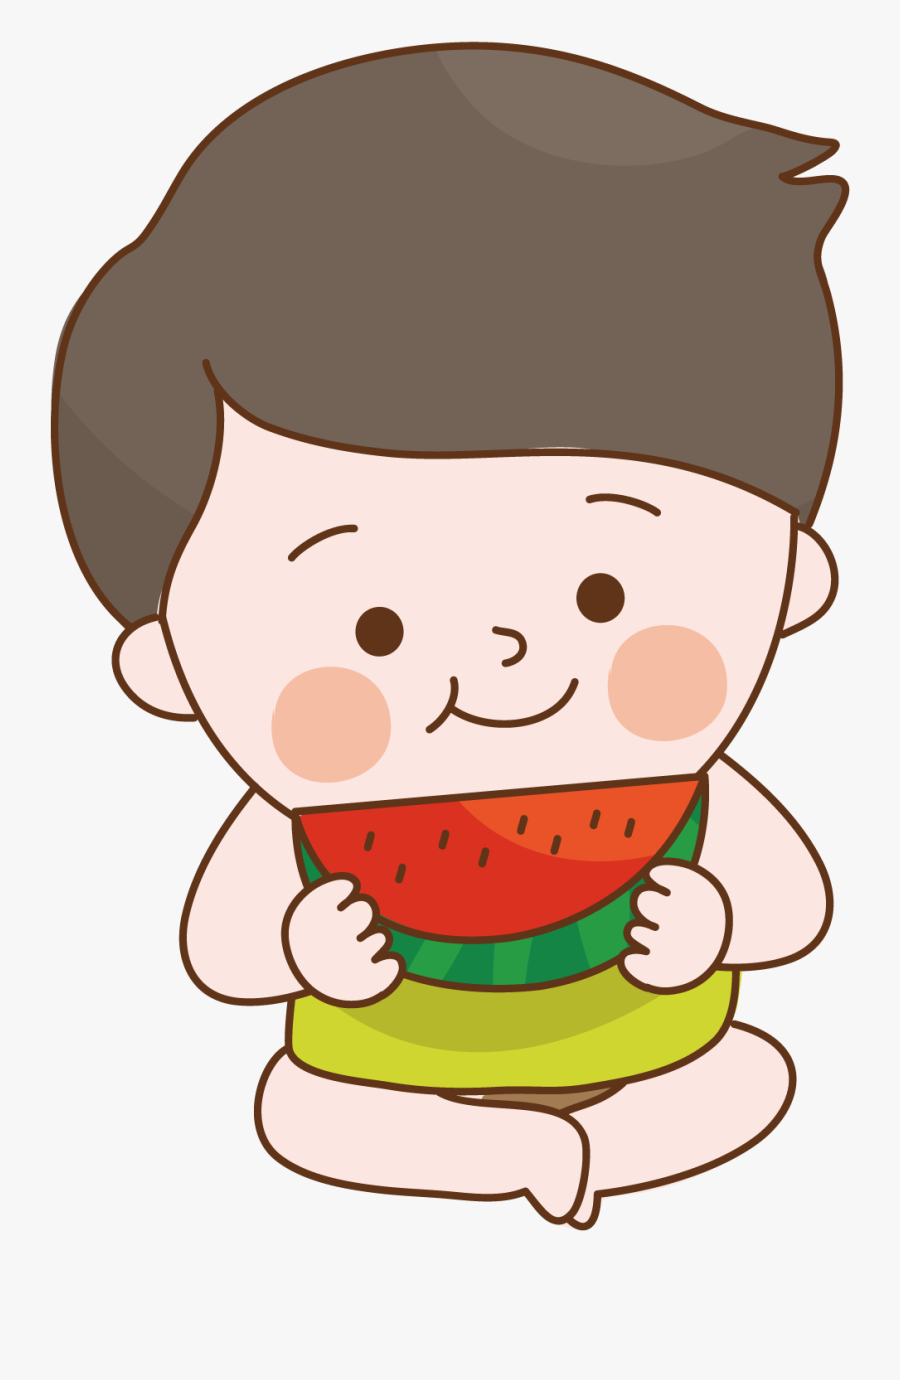 Child Food Sitting To Eat Watermelon - Eating Watermelon Boy Clipart, Transparent Clipart